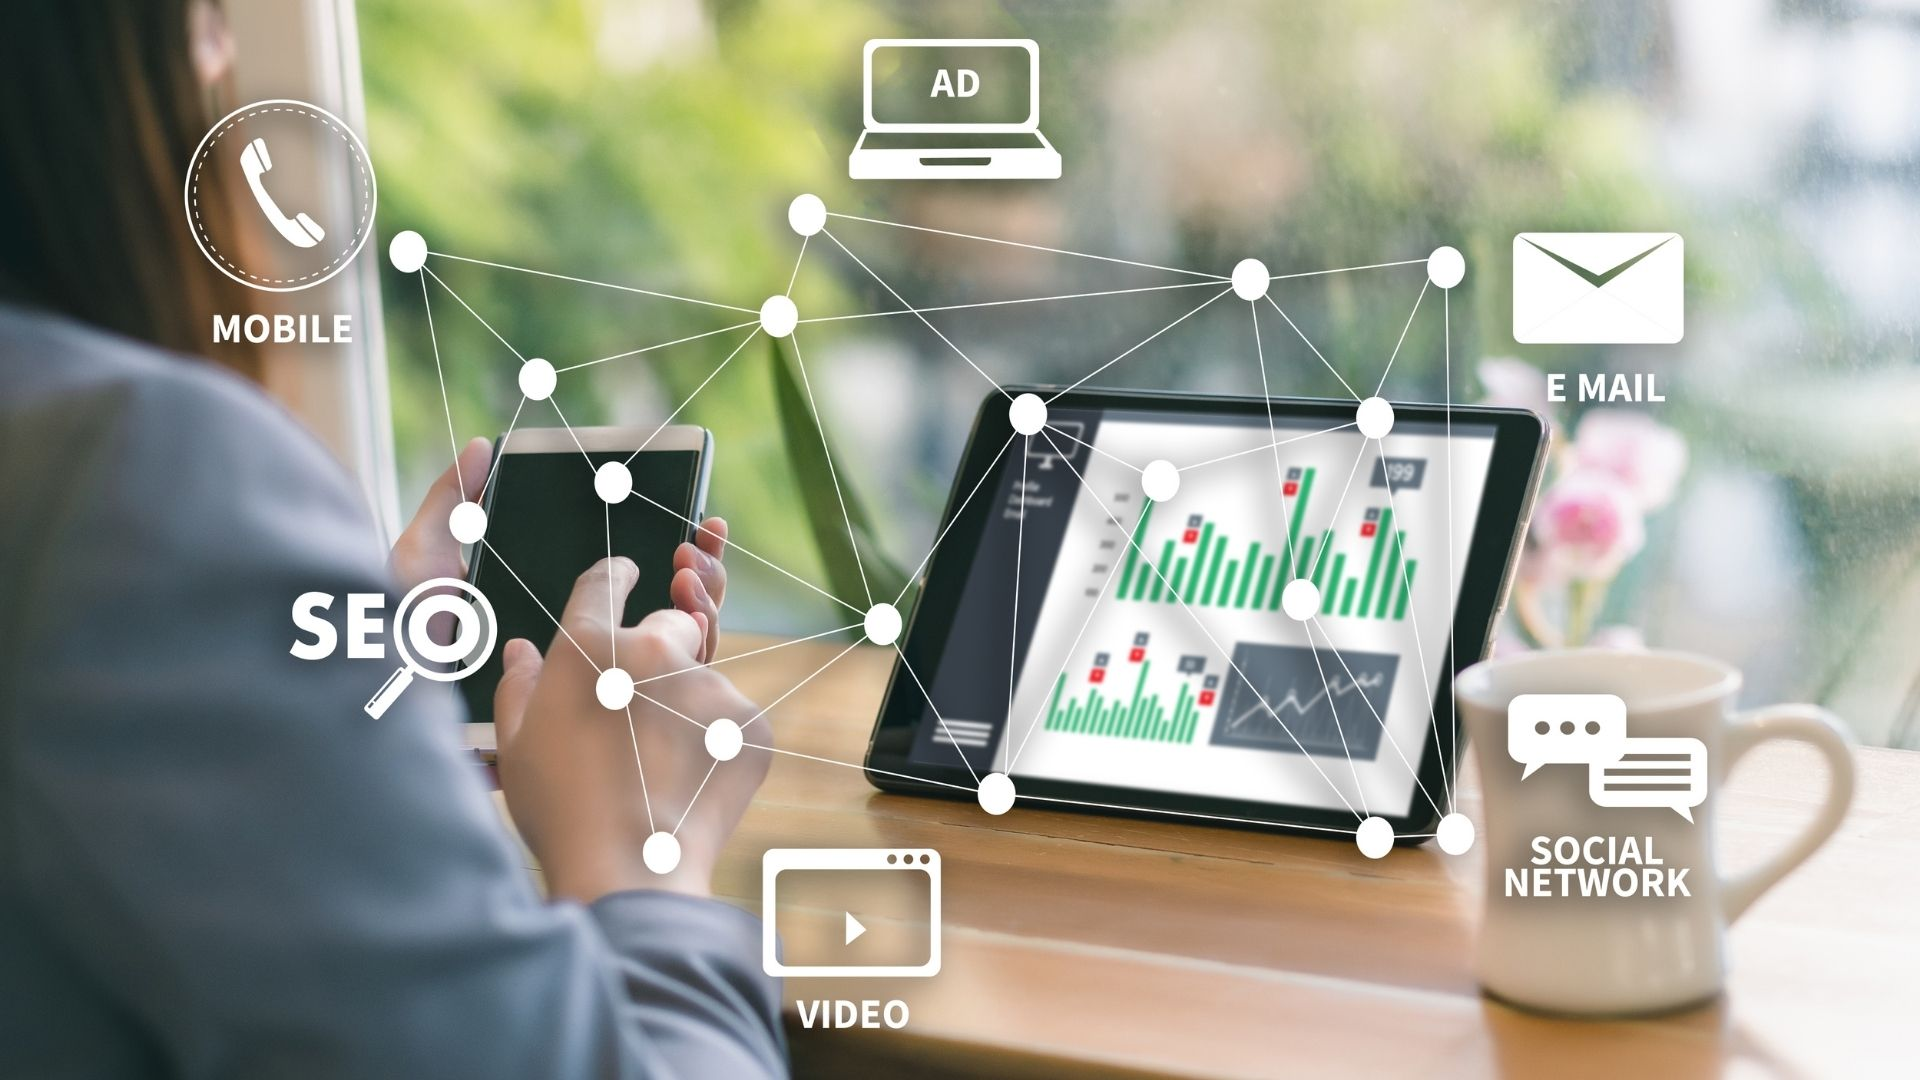 How Digital Marketing Images Can Help Improve Your Business